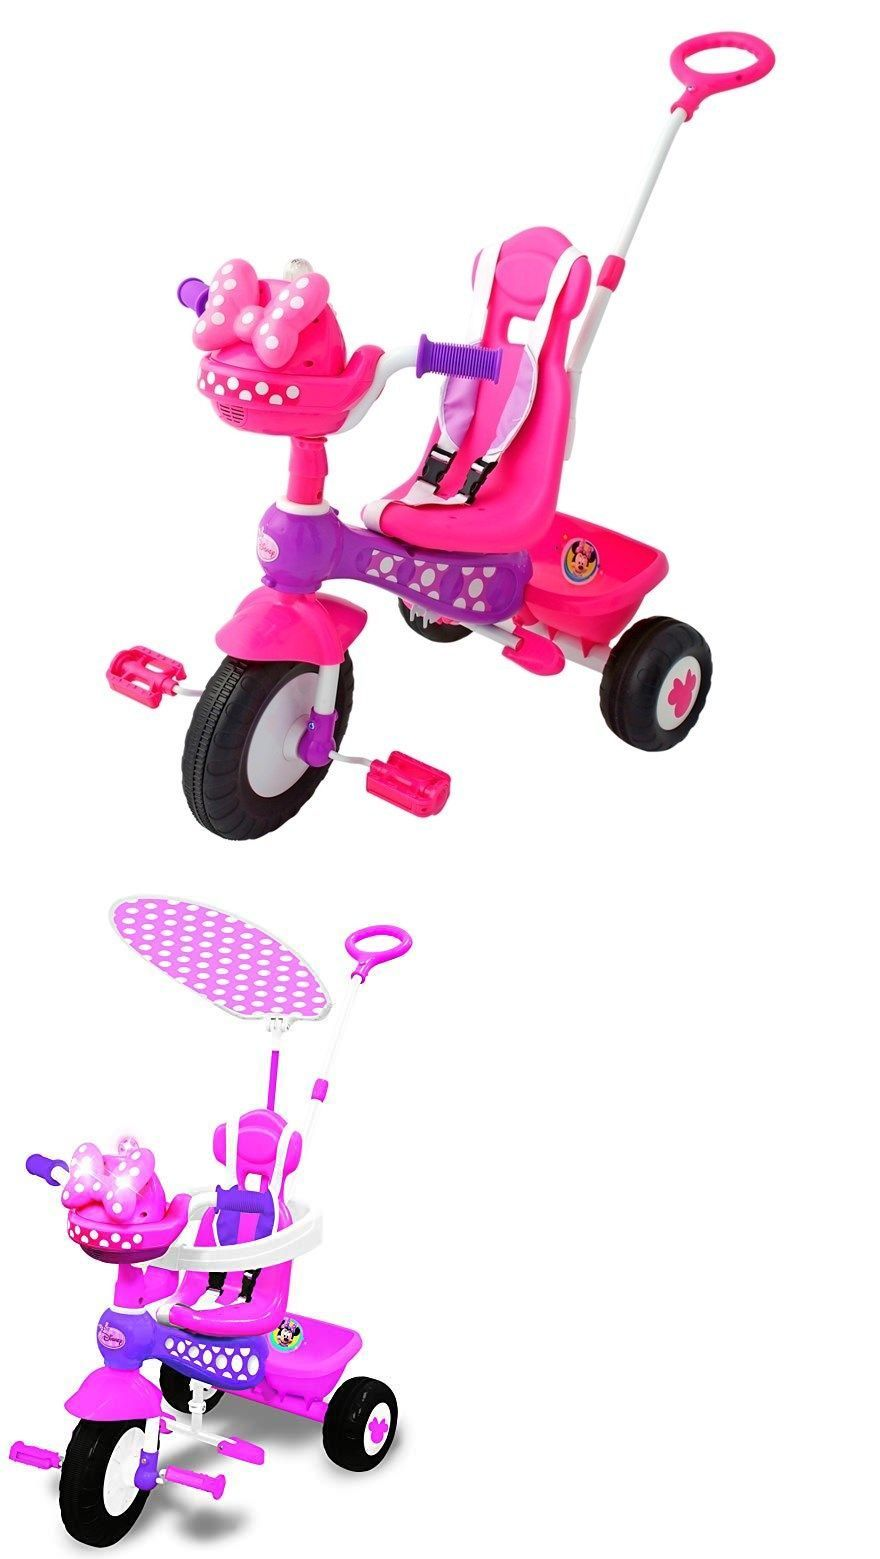 38a5272f73b Ride-Ons and Tricycles 19023: Disney Minnie Mouse Push N Ride Trike -> BUY  IT NOW ONLY: $49 on #eBay #tricycles #disney #minnie #mouse #trike